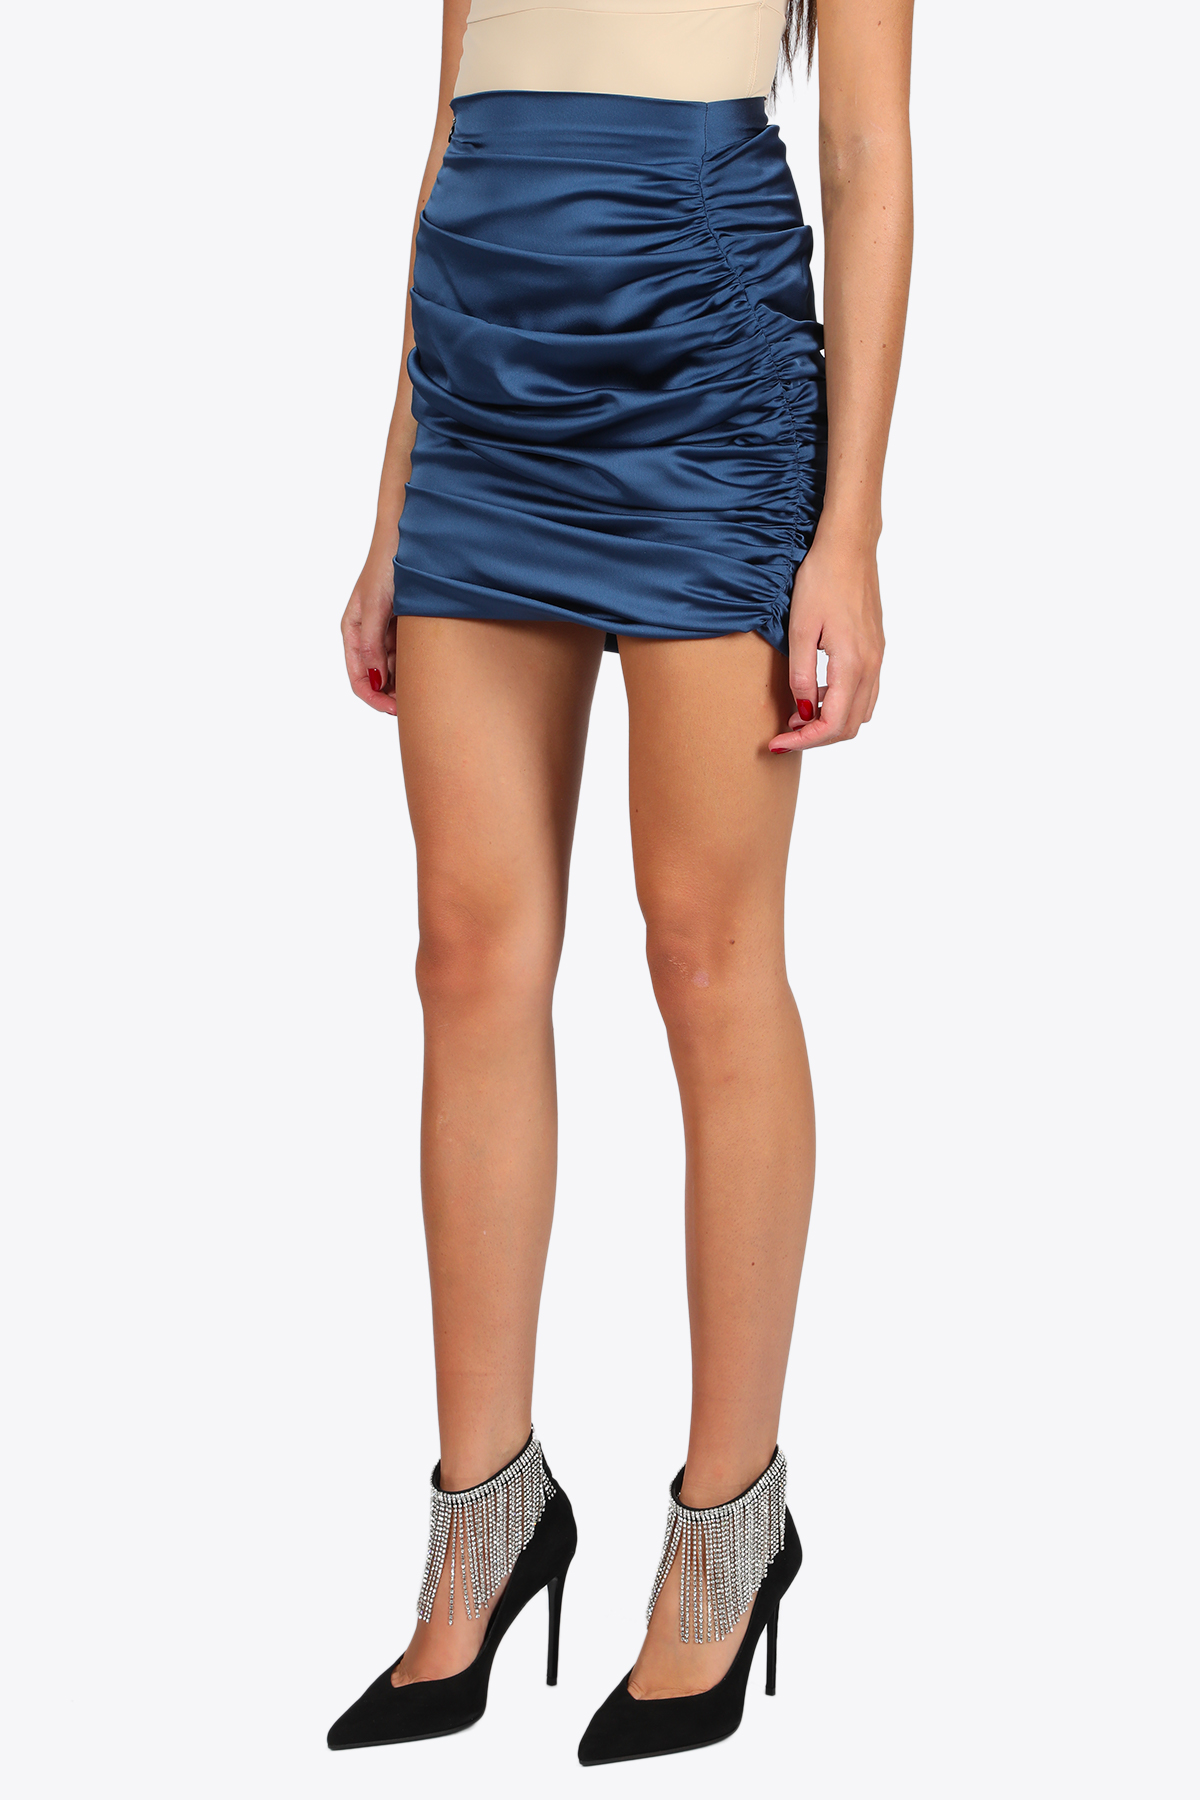 CURLING SATIN SKIRT NINEMINUTES | 15 | THE CURLING SKIRTBLUE